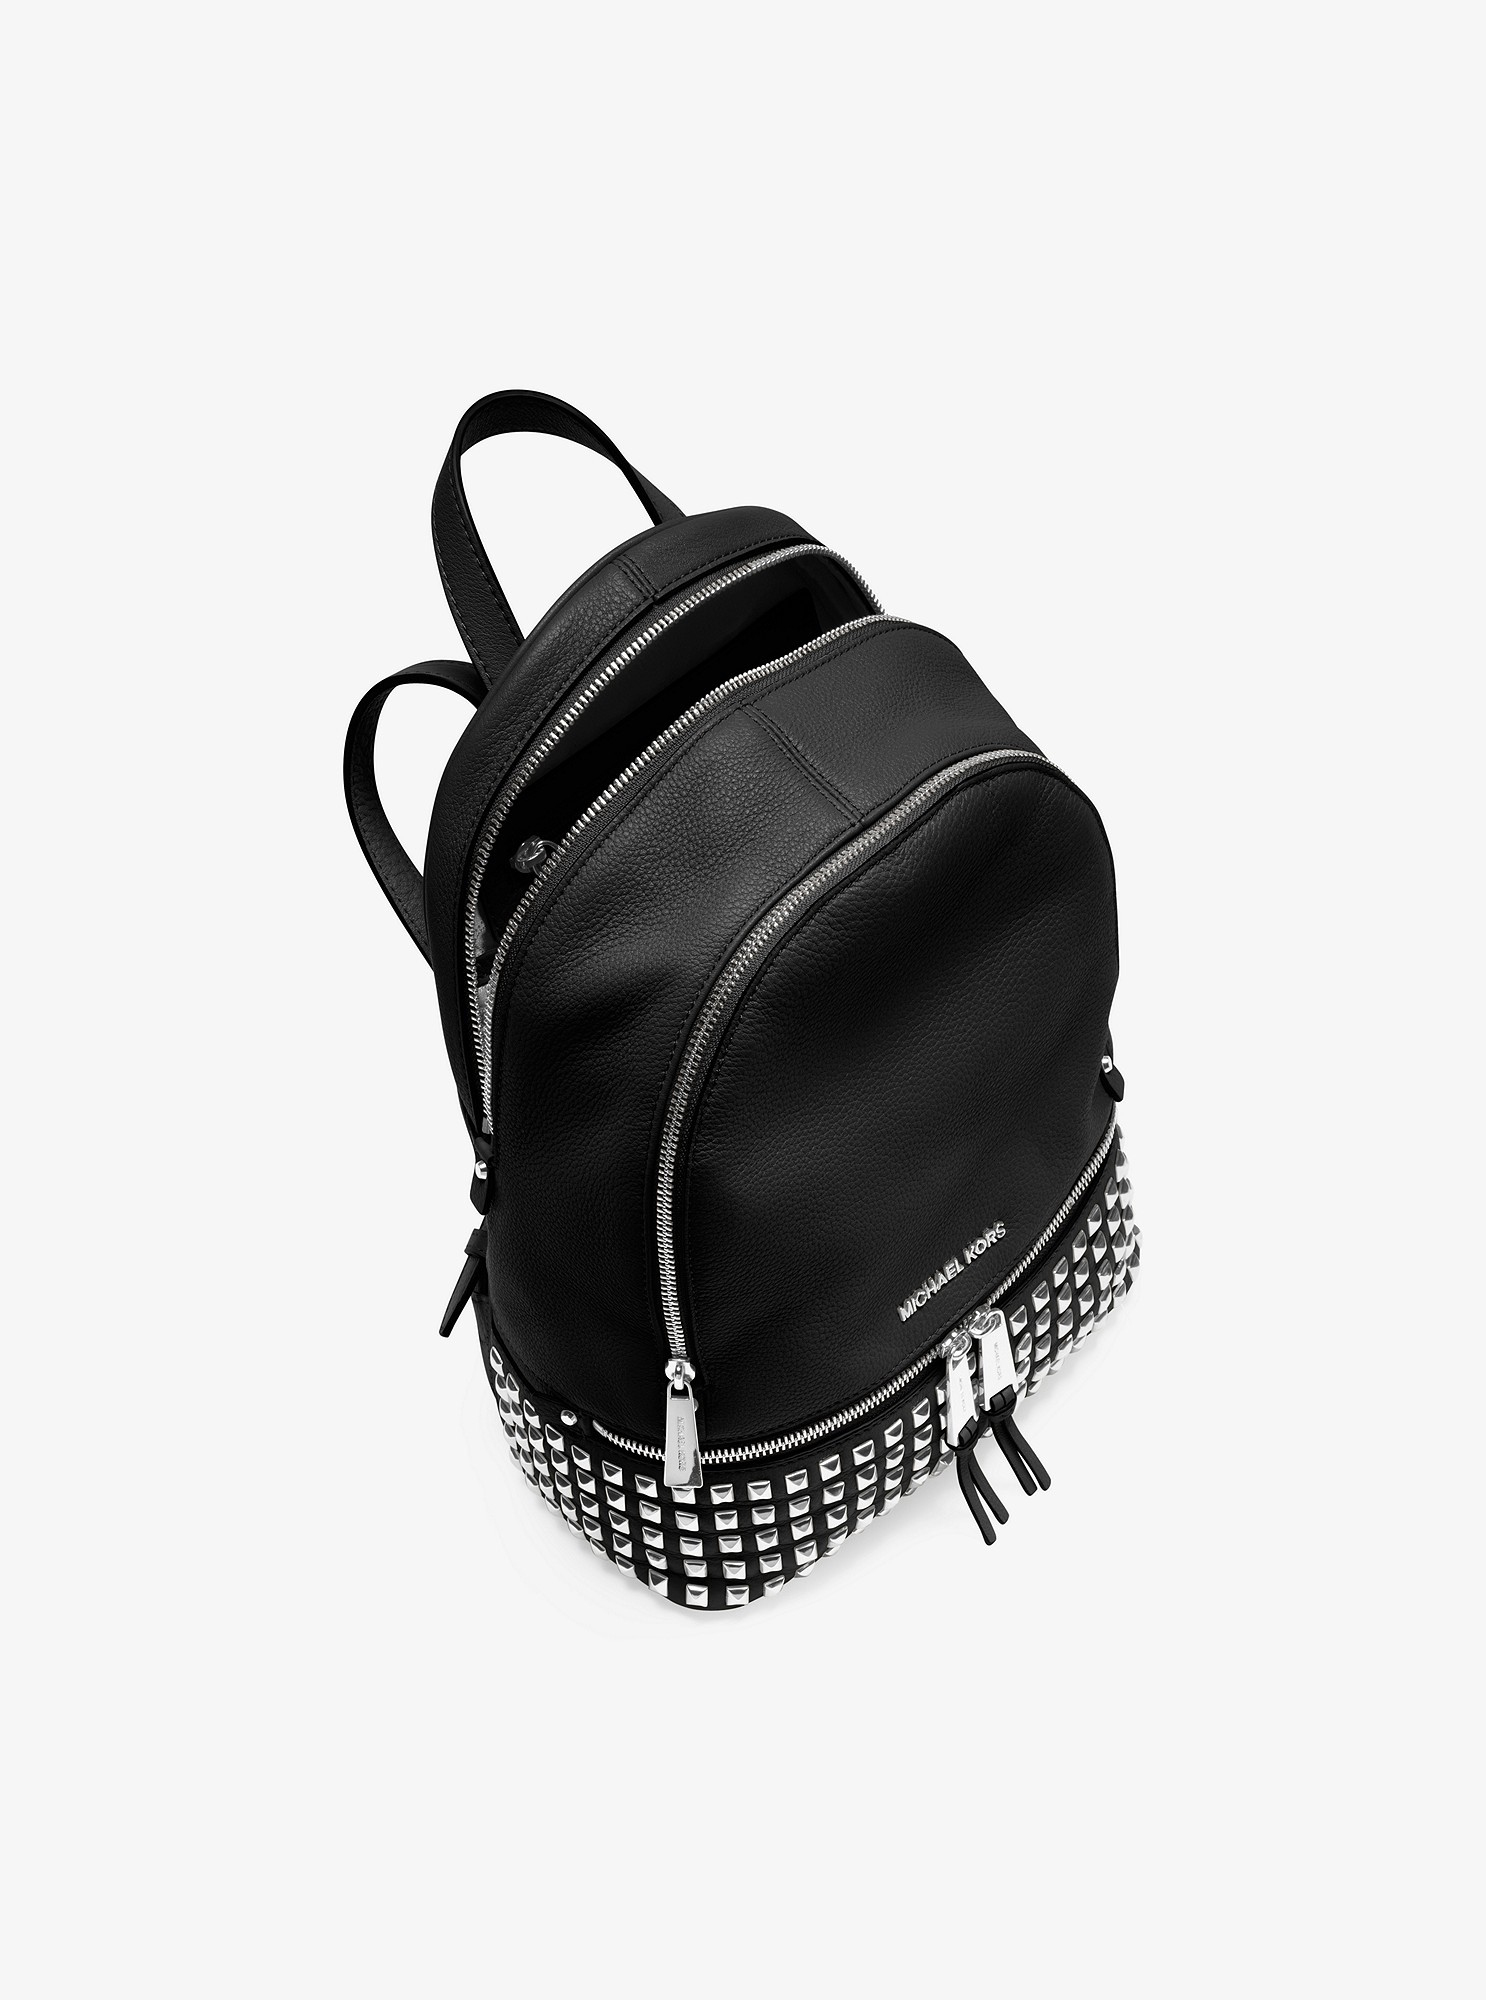 cadc030b78c5 Michael Kors Rhea Small Studded Leather Backpack - Black in 2018 ...